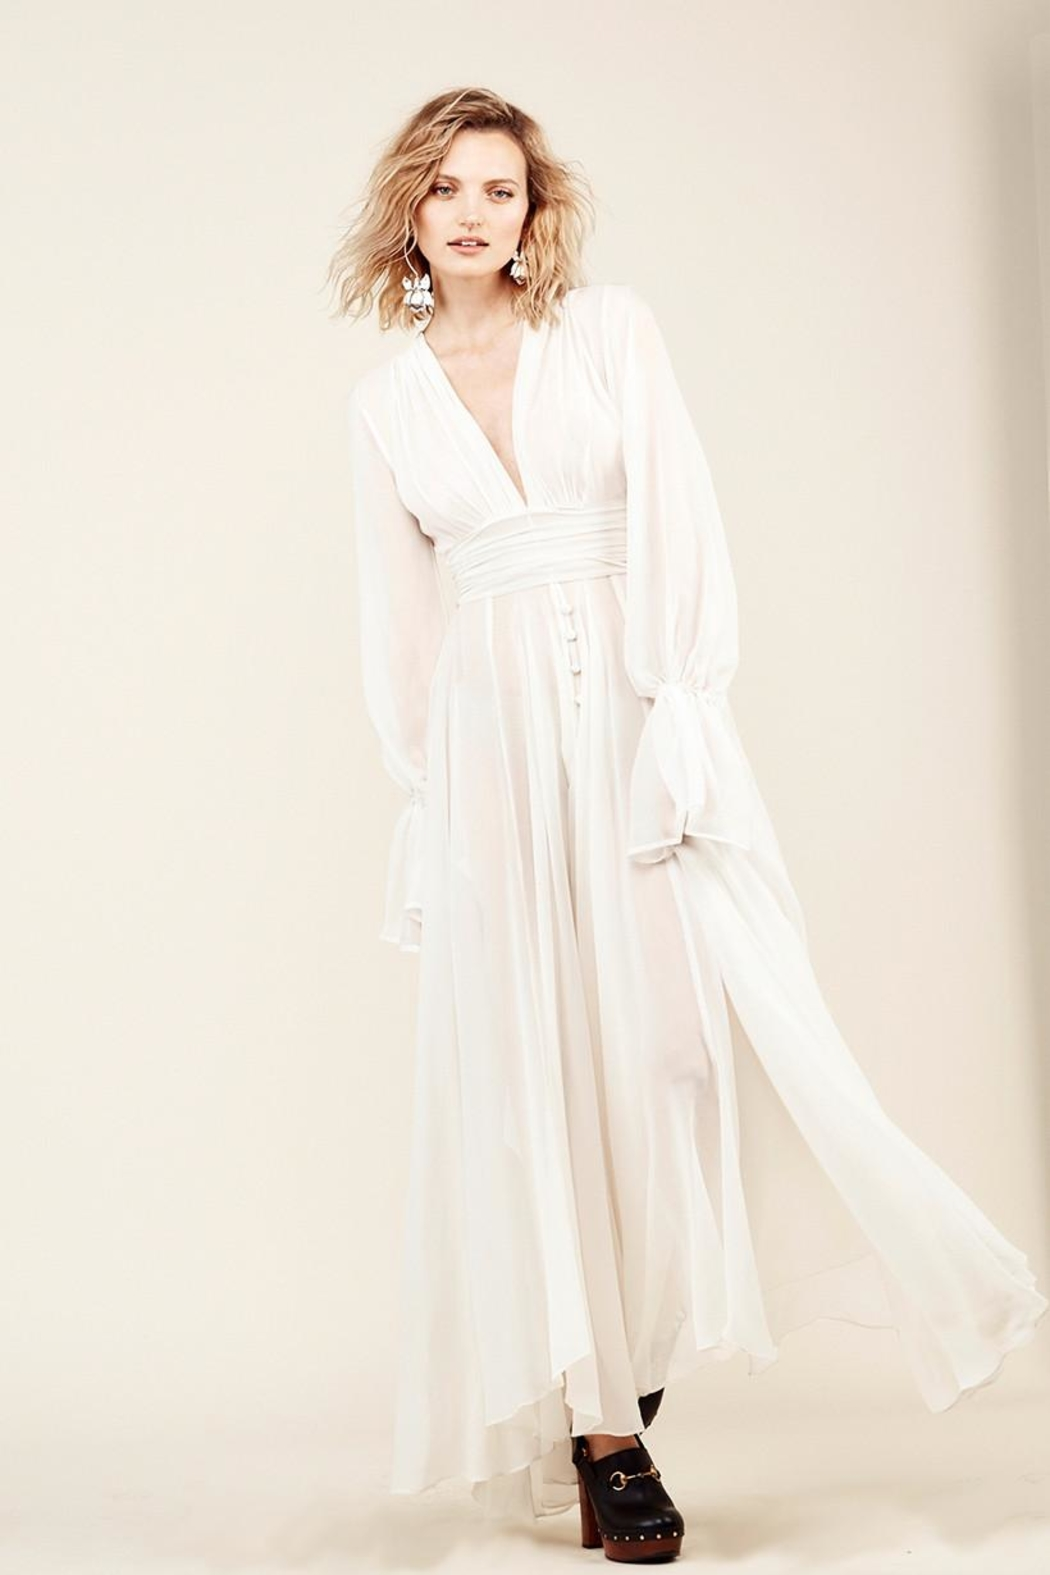 Stone Cold Fox Geneva Gown-Ivory from California by Brigitte & Stone ...